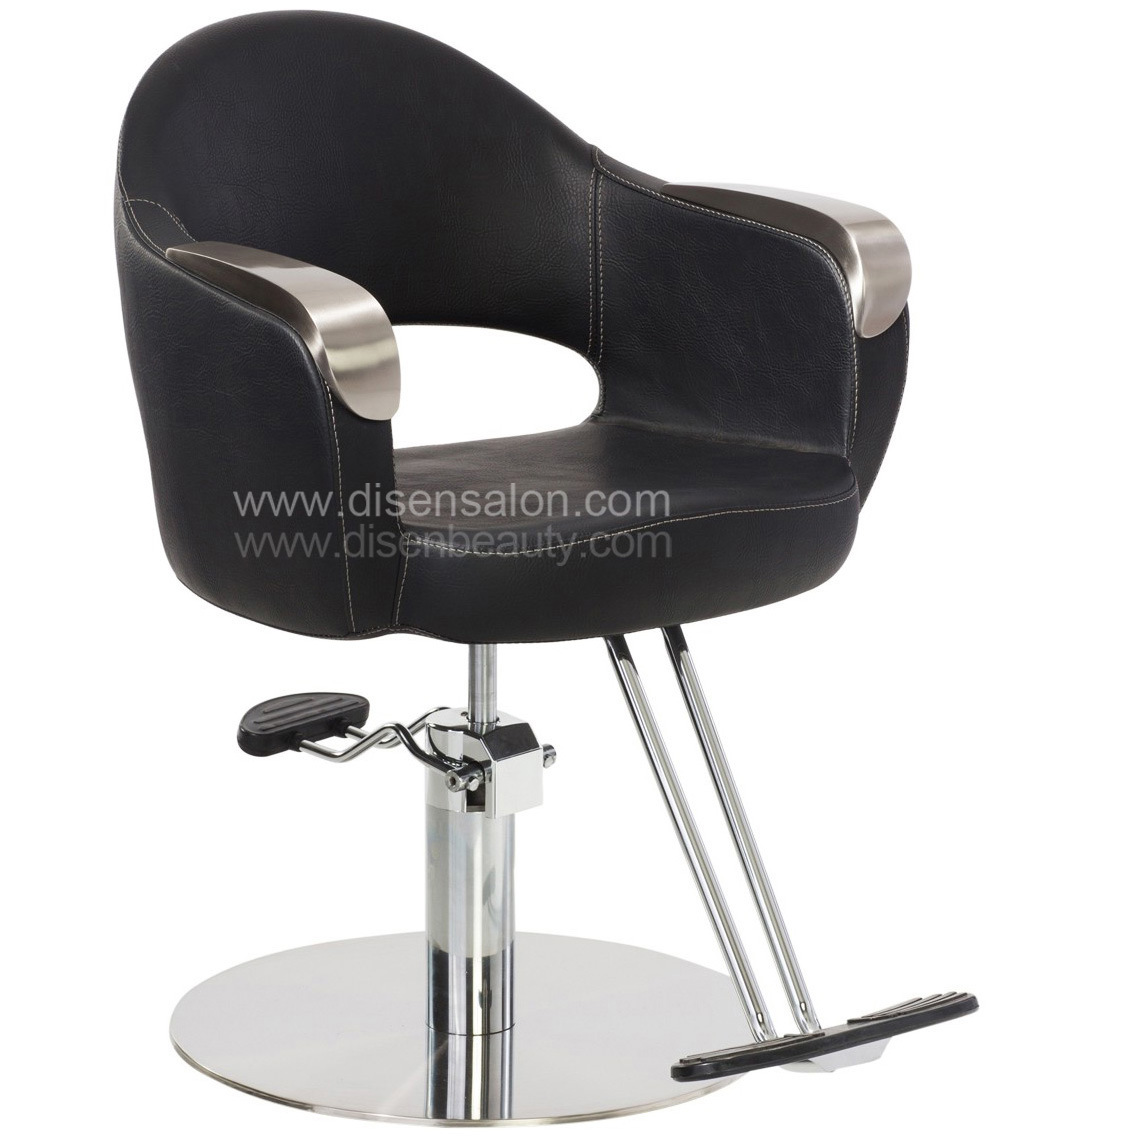 Comfortable High Quality Beauty Salon Furniture Salon Chair (AL356)